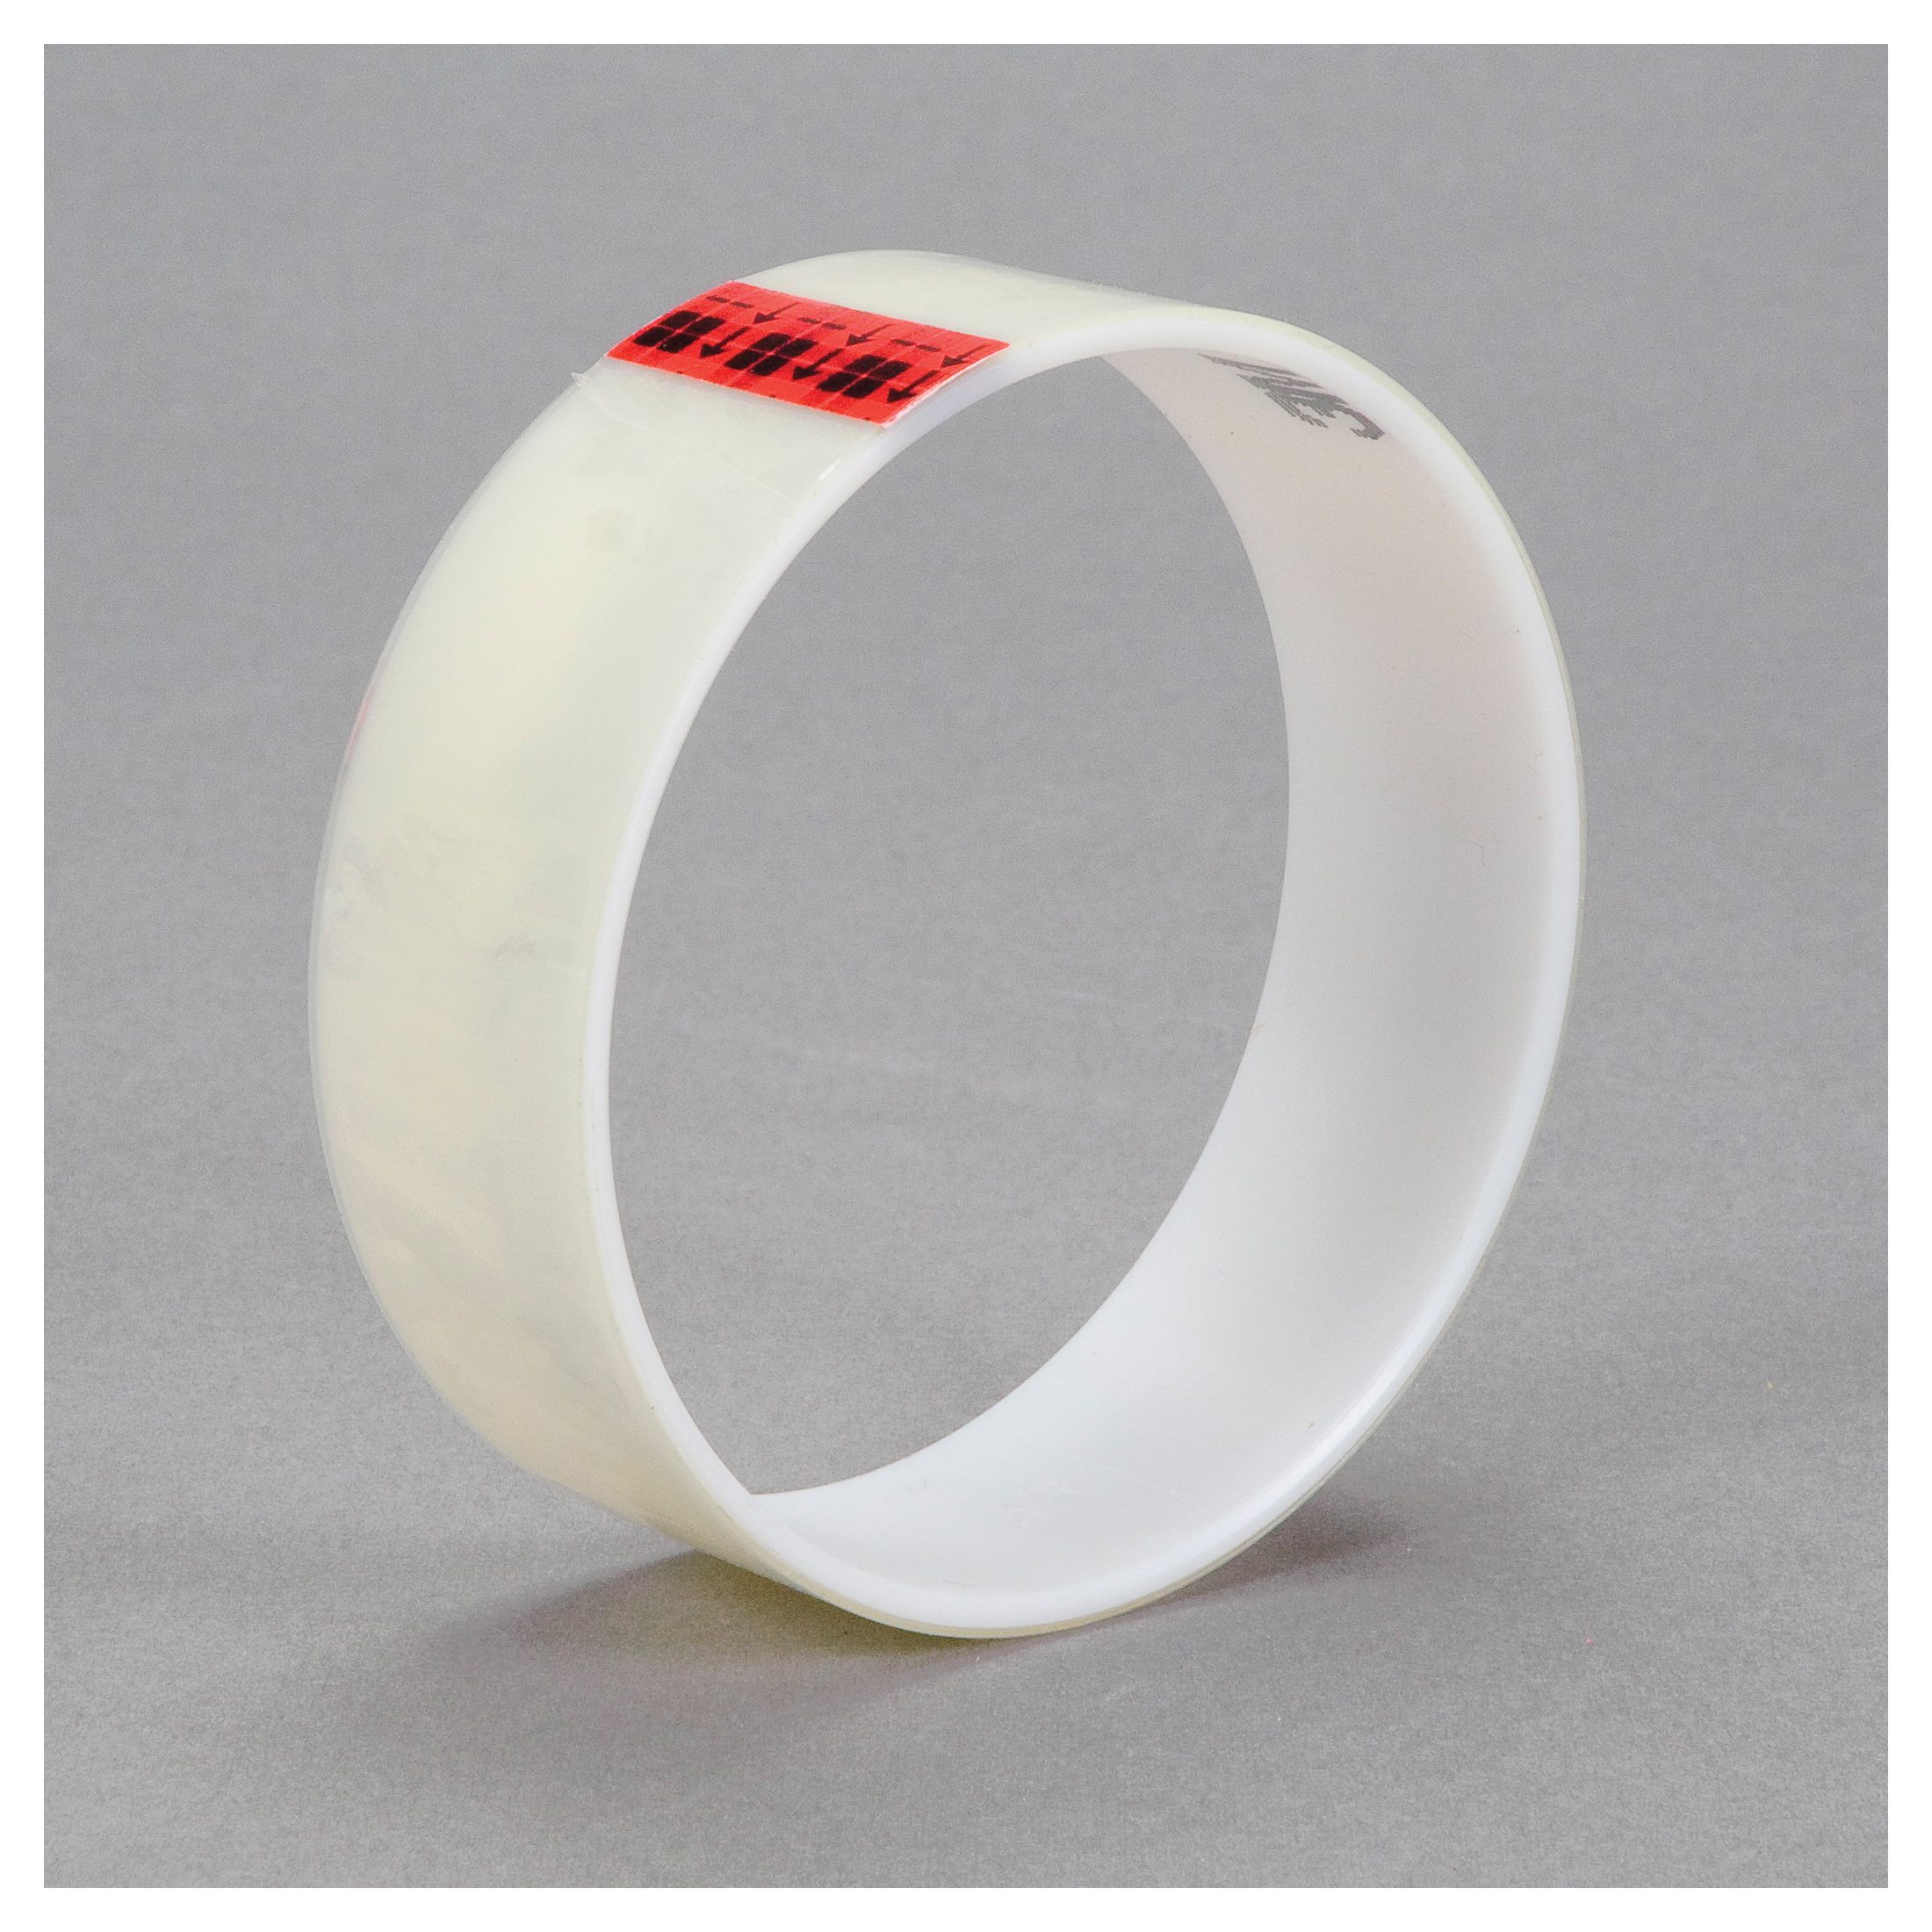 3M™ 021200-03588 Film Tape, 72 yd L x 1 in W, 2.2 mil THK, Acrylic Adhesive, 0.9 mil Polyester Backing, Transparent